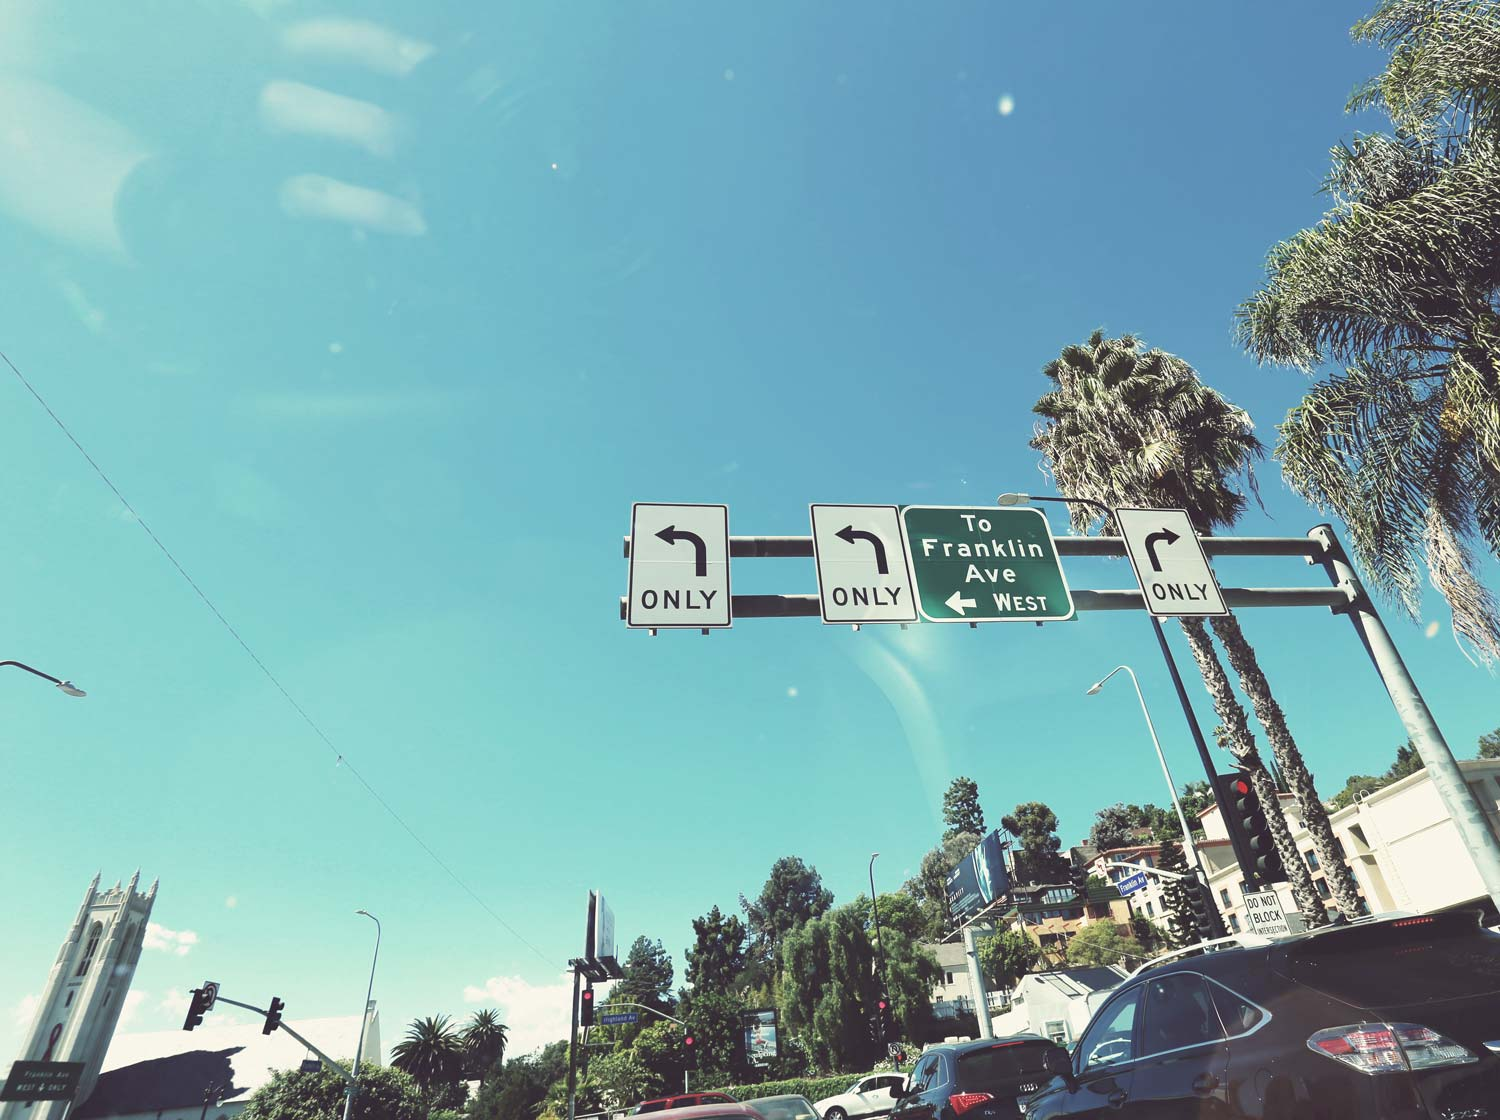 Bild: Los Angeles Highway